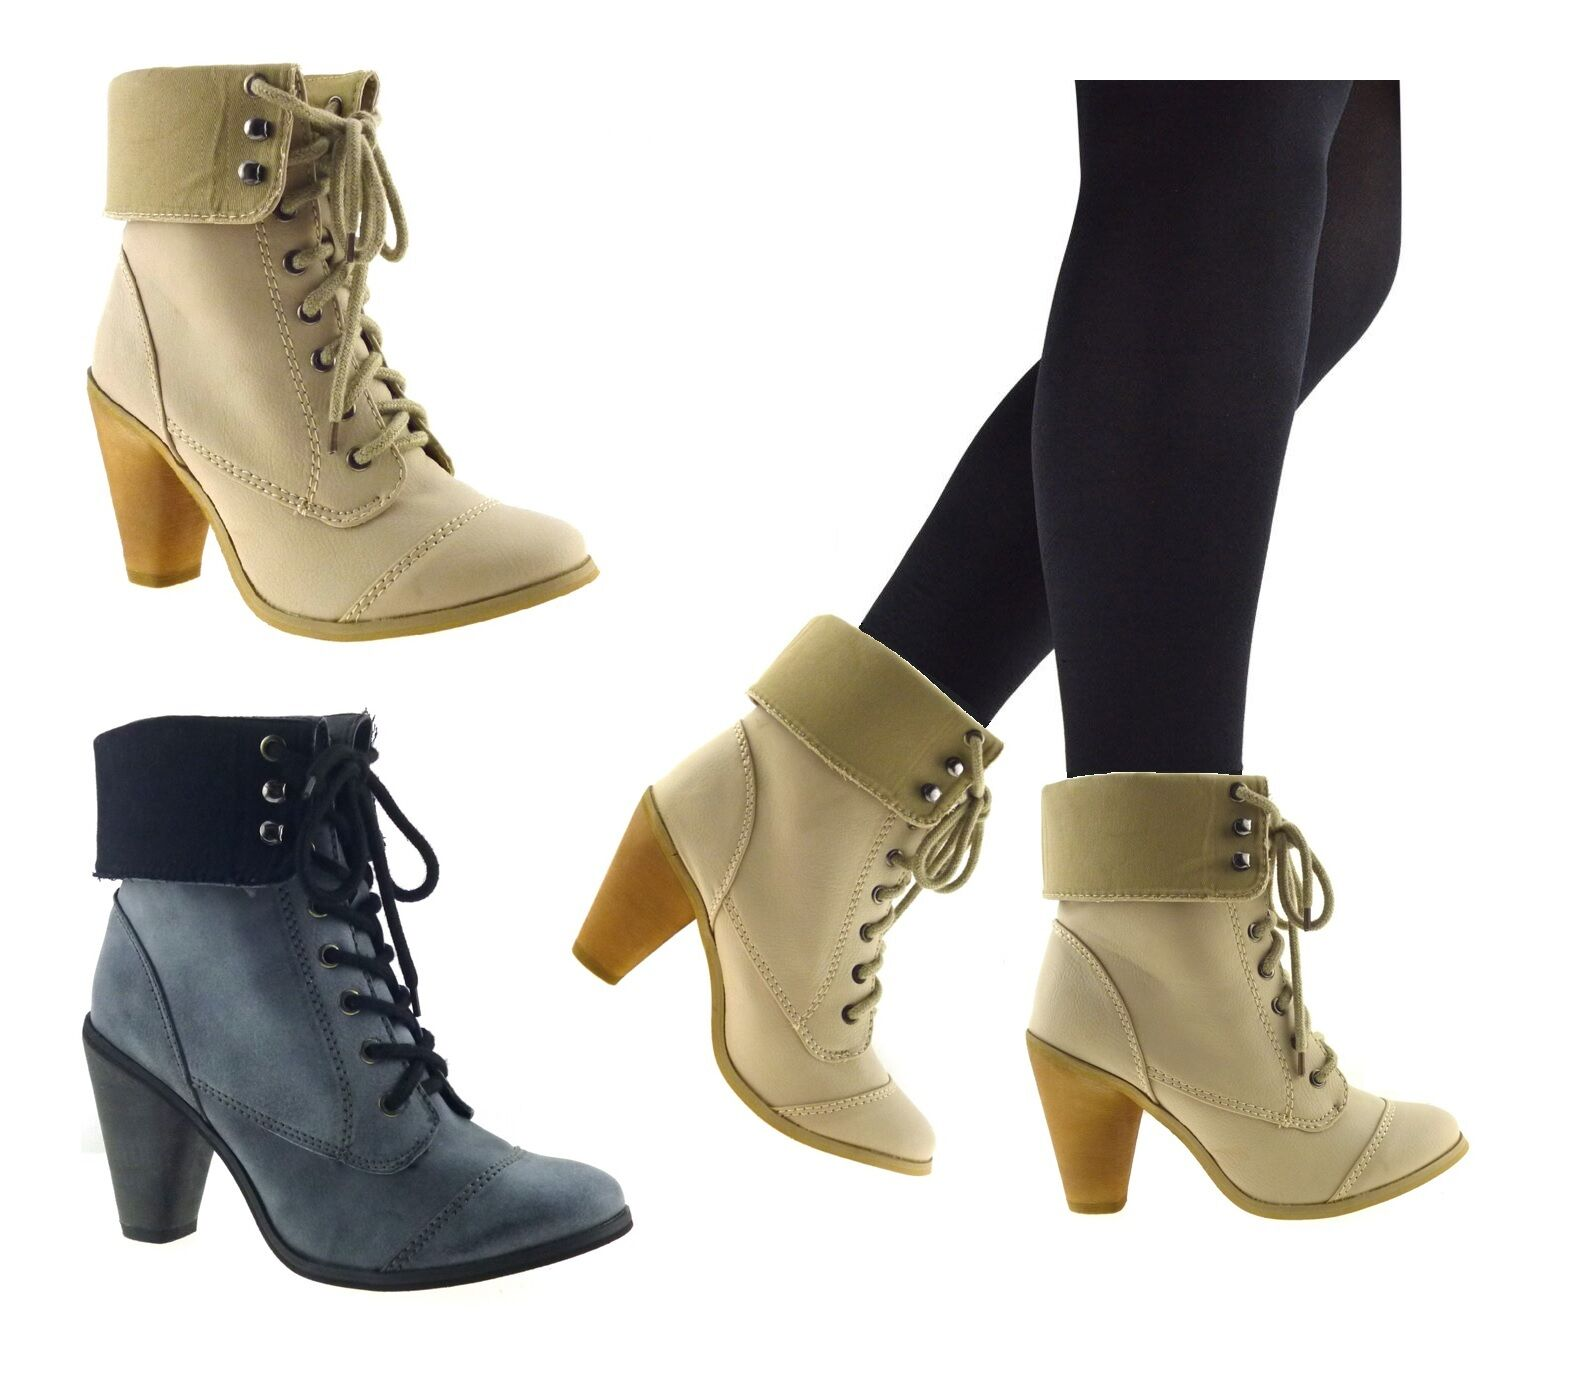 LADIES WOMENS NEW MID LOW BLOCK HEEL ANKLE BIKER MILITARY ARMY BOOTS SHOES SIZE